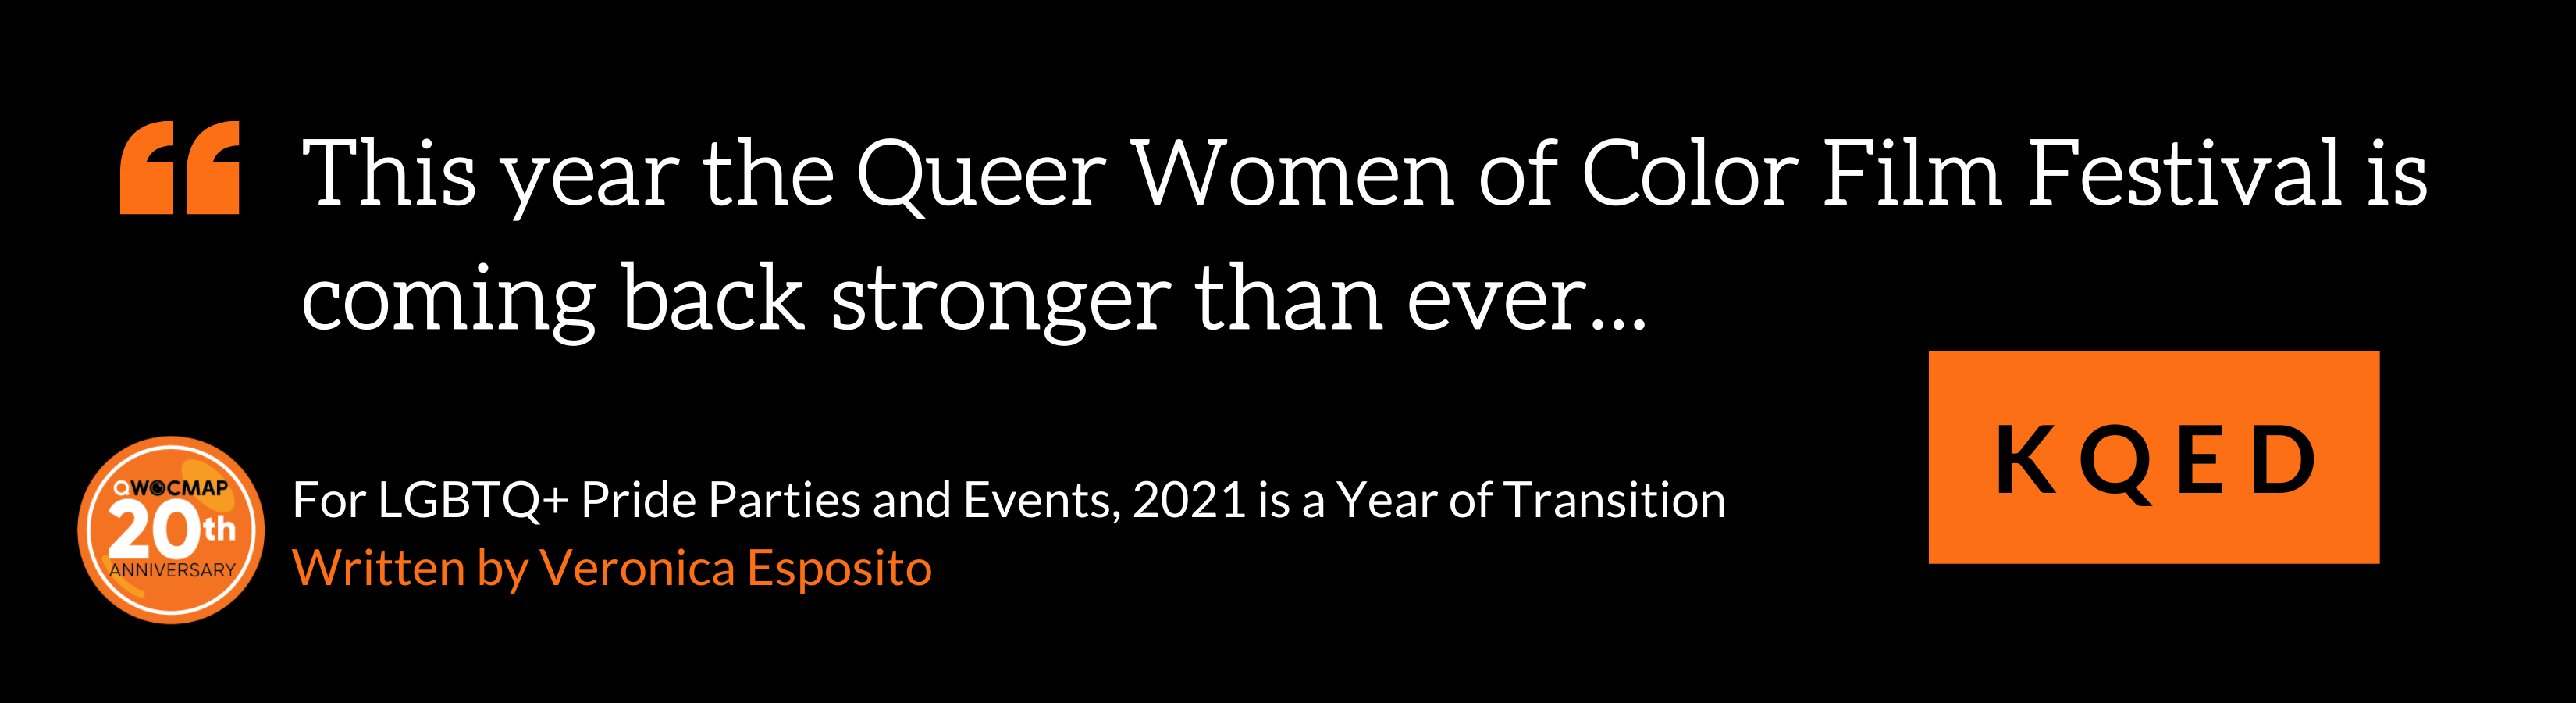 """On a black background, white text in orange quotation marks reads, """"This year the Queer Women of Color Film Festival is coming back stronger than ever…"""" Below, black text in an orange box reads KQED. In the bottom left corner is the QWOCMAP 20th anniversary logo, and white and orange text that reads For LGBTQ+ Pride Parties and Events, 2021 is a Year of Transition, written by Veronica Esposito."""